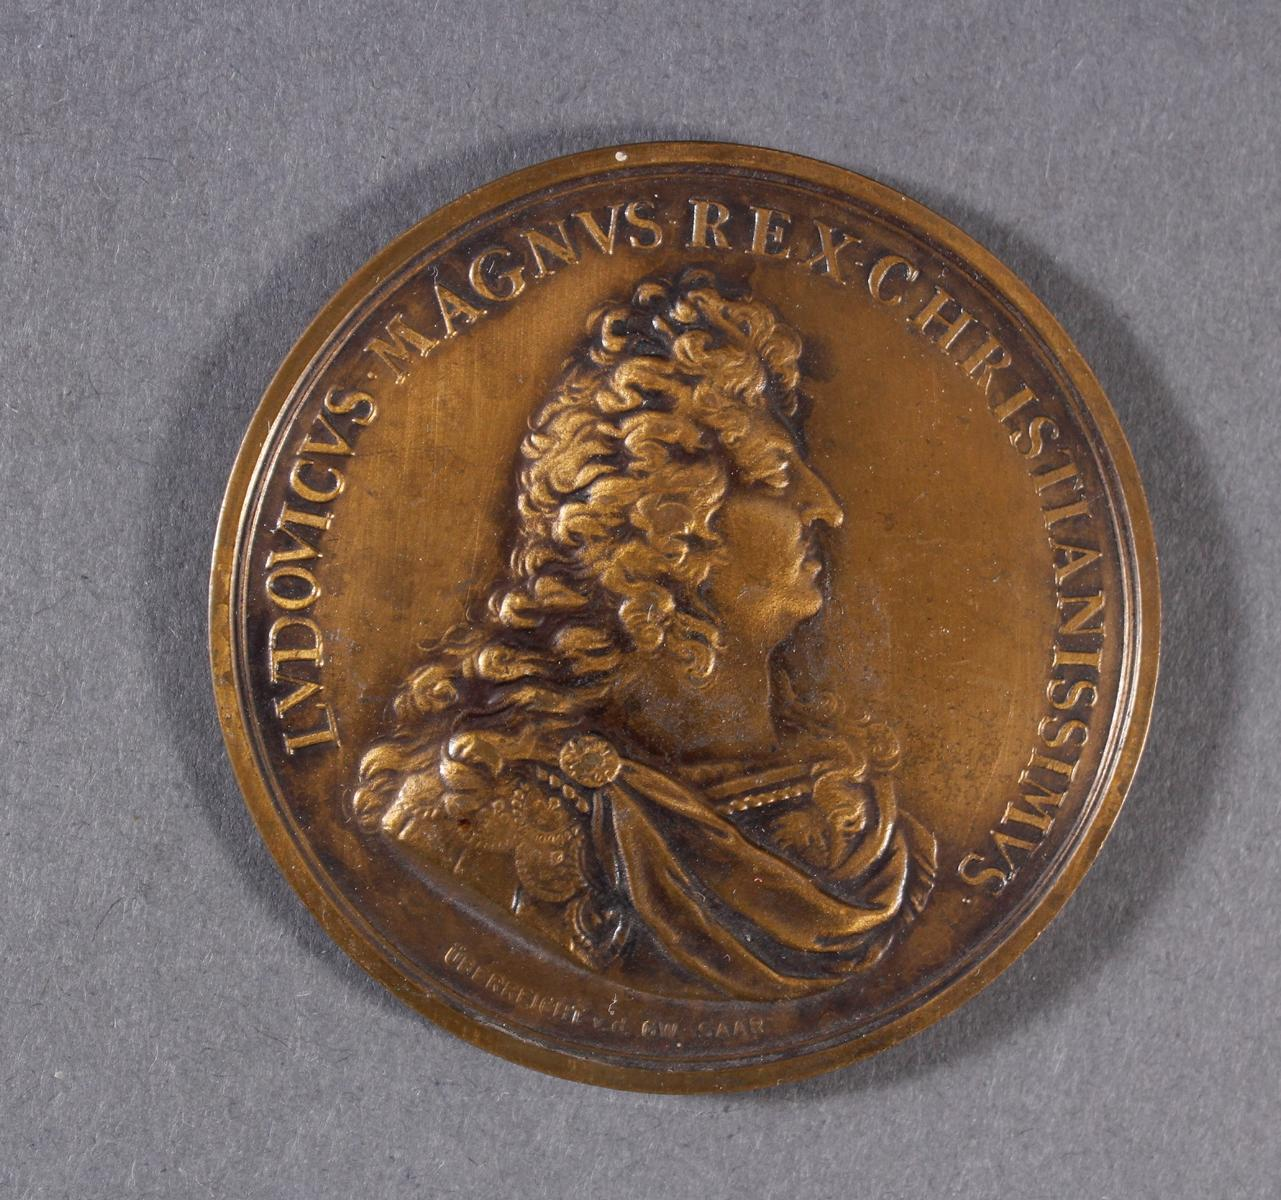 Louis XIV, 1643-1715. Prämienmedaille